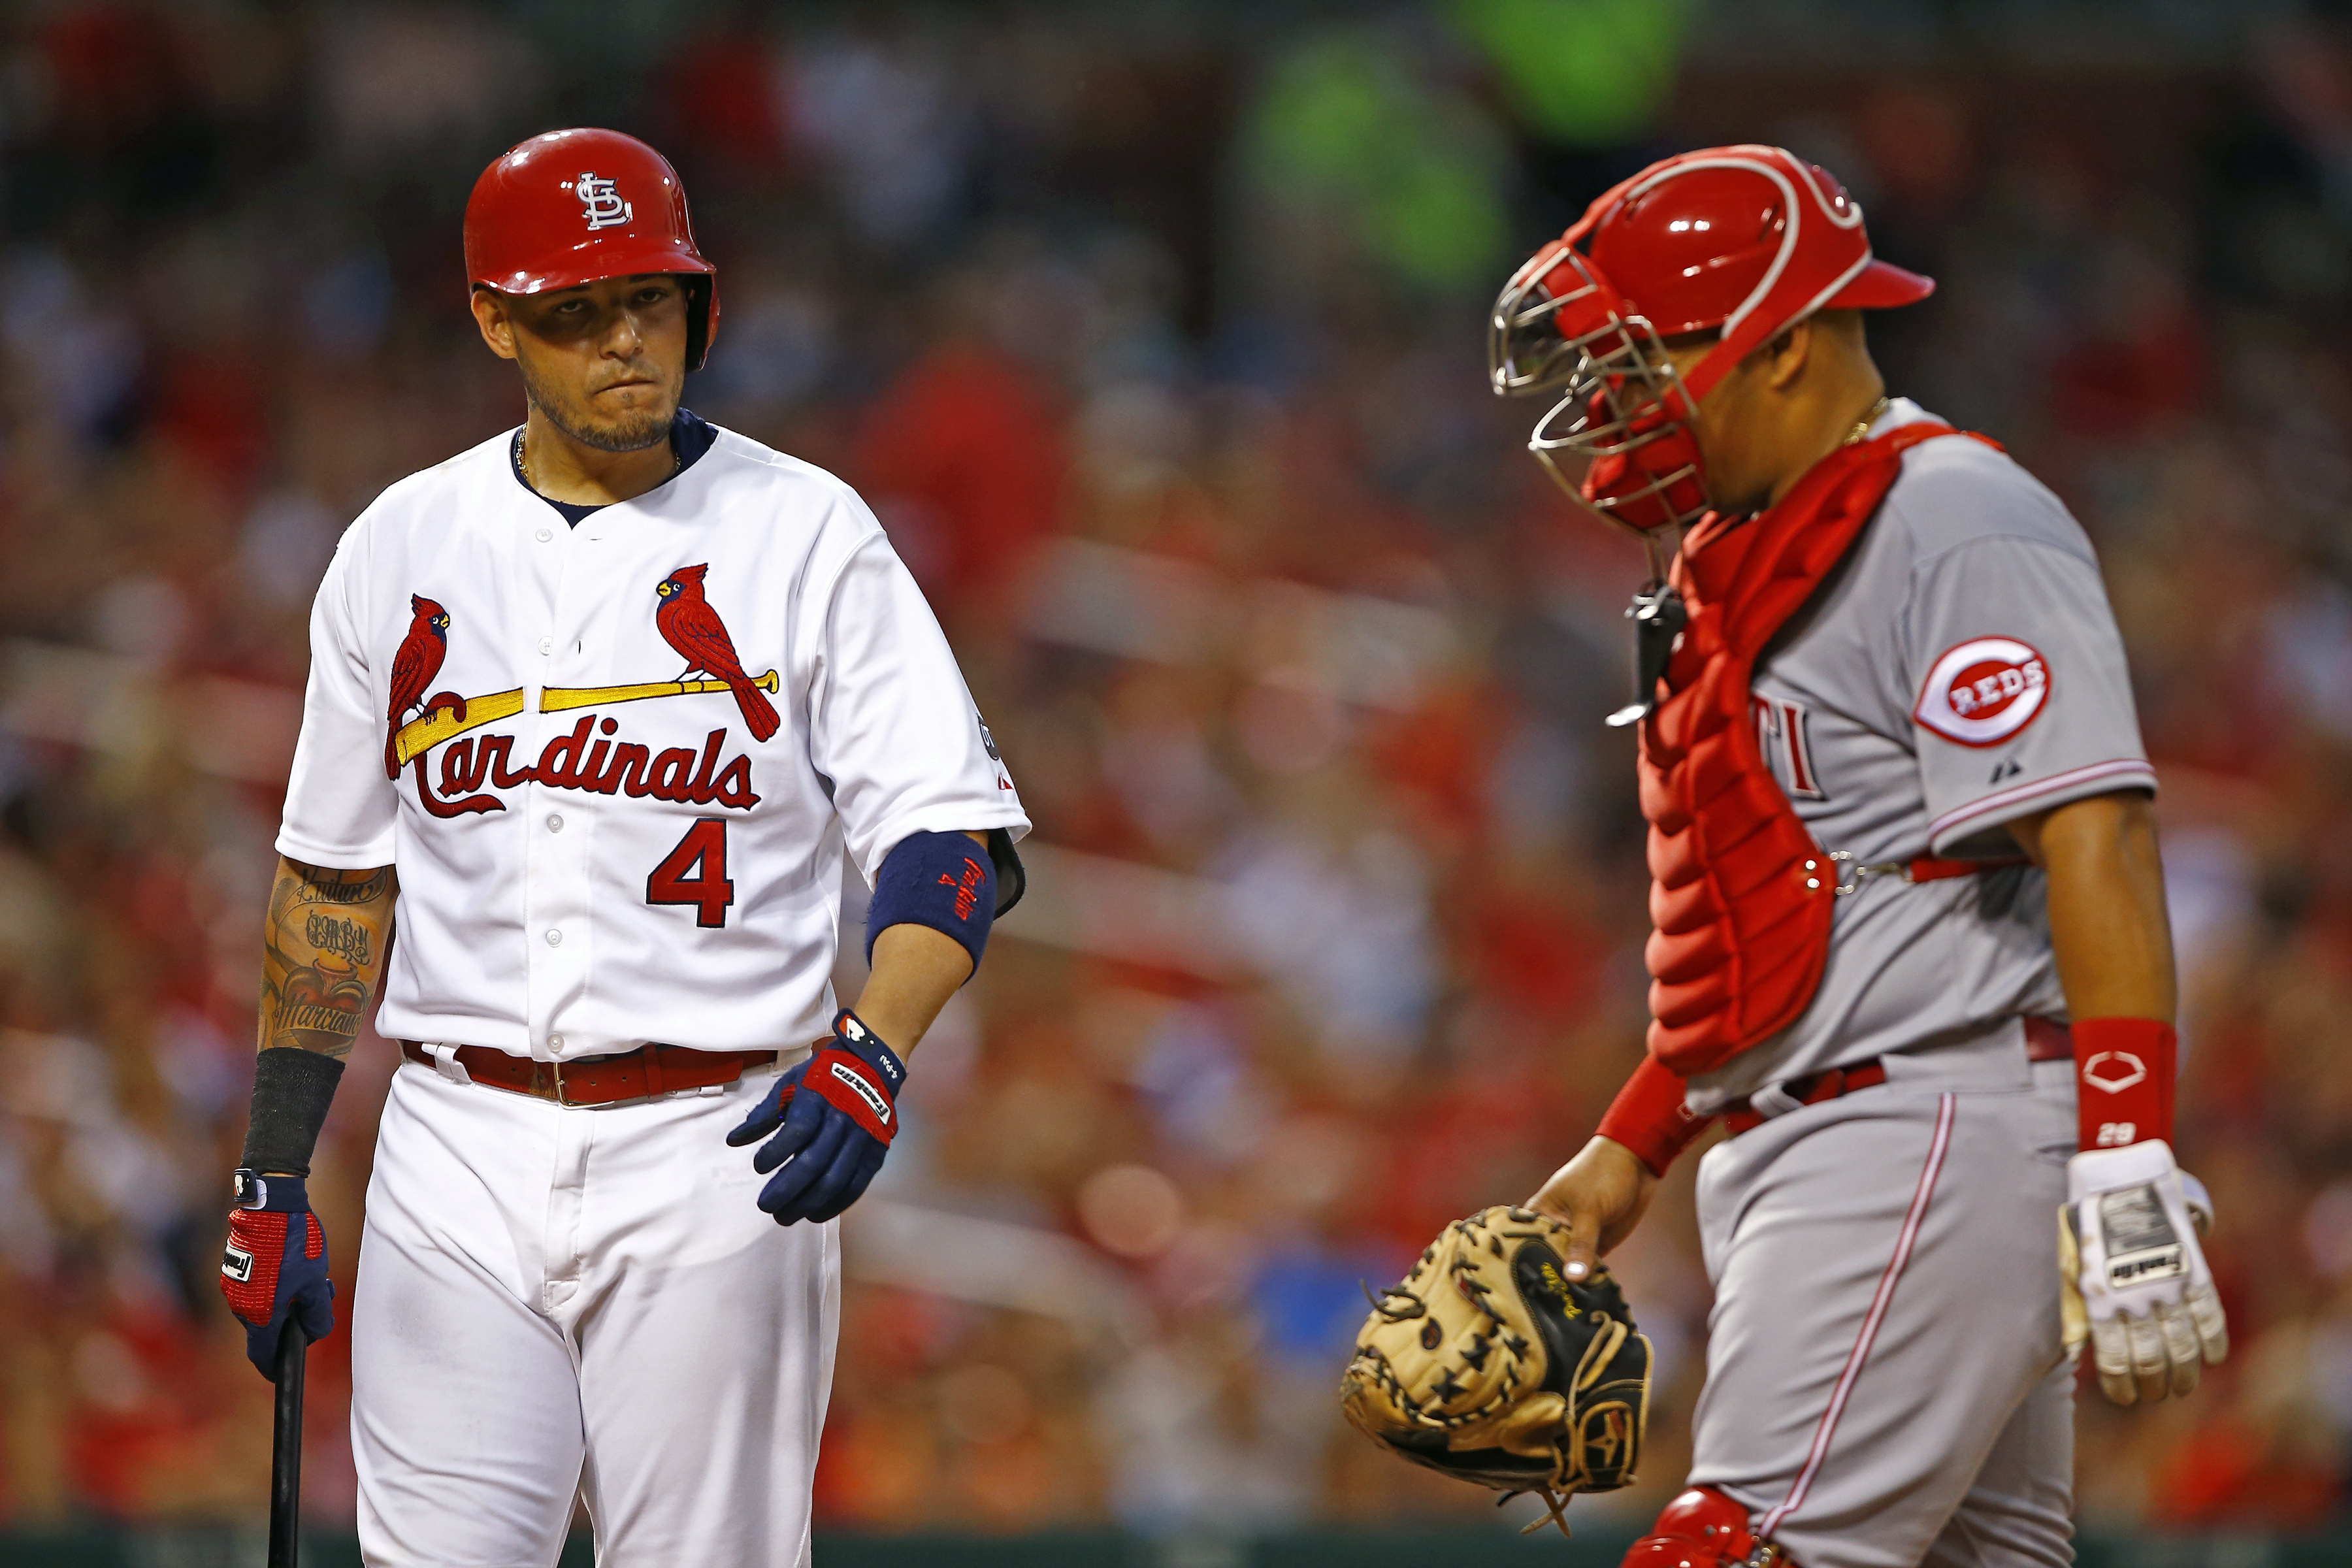 St. Louis Cardinals' Yadier Molina, left, looks on as Cincinnati Reds catcher Brayan Pena shakes off a stinger after being hit by Molina's bat during the fourth inning of a baseball game, Wednesday, July 29, 2015, in St. Louis. (AP Photo/Billy Hurst)